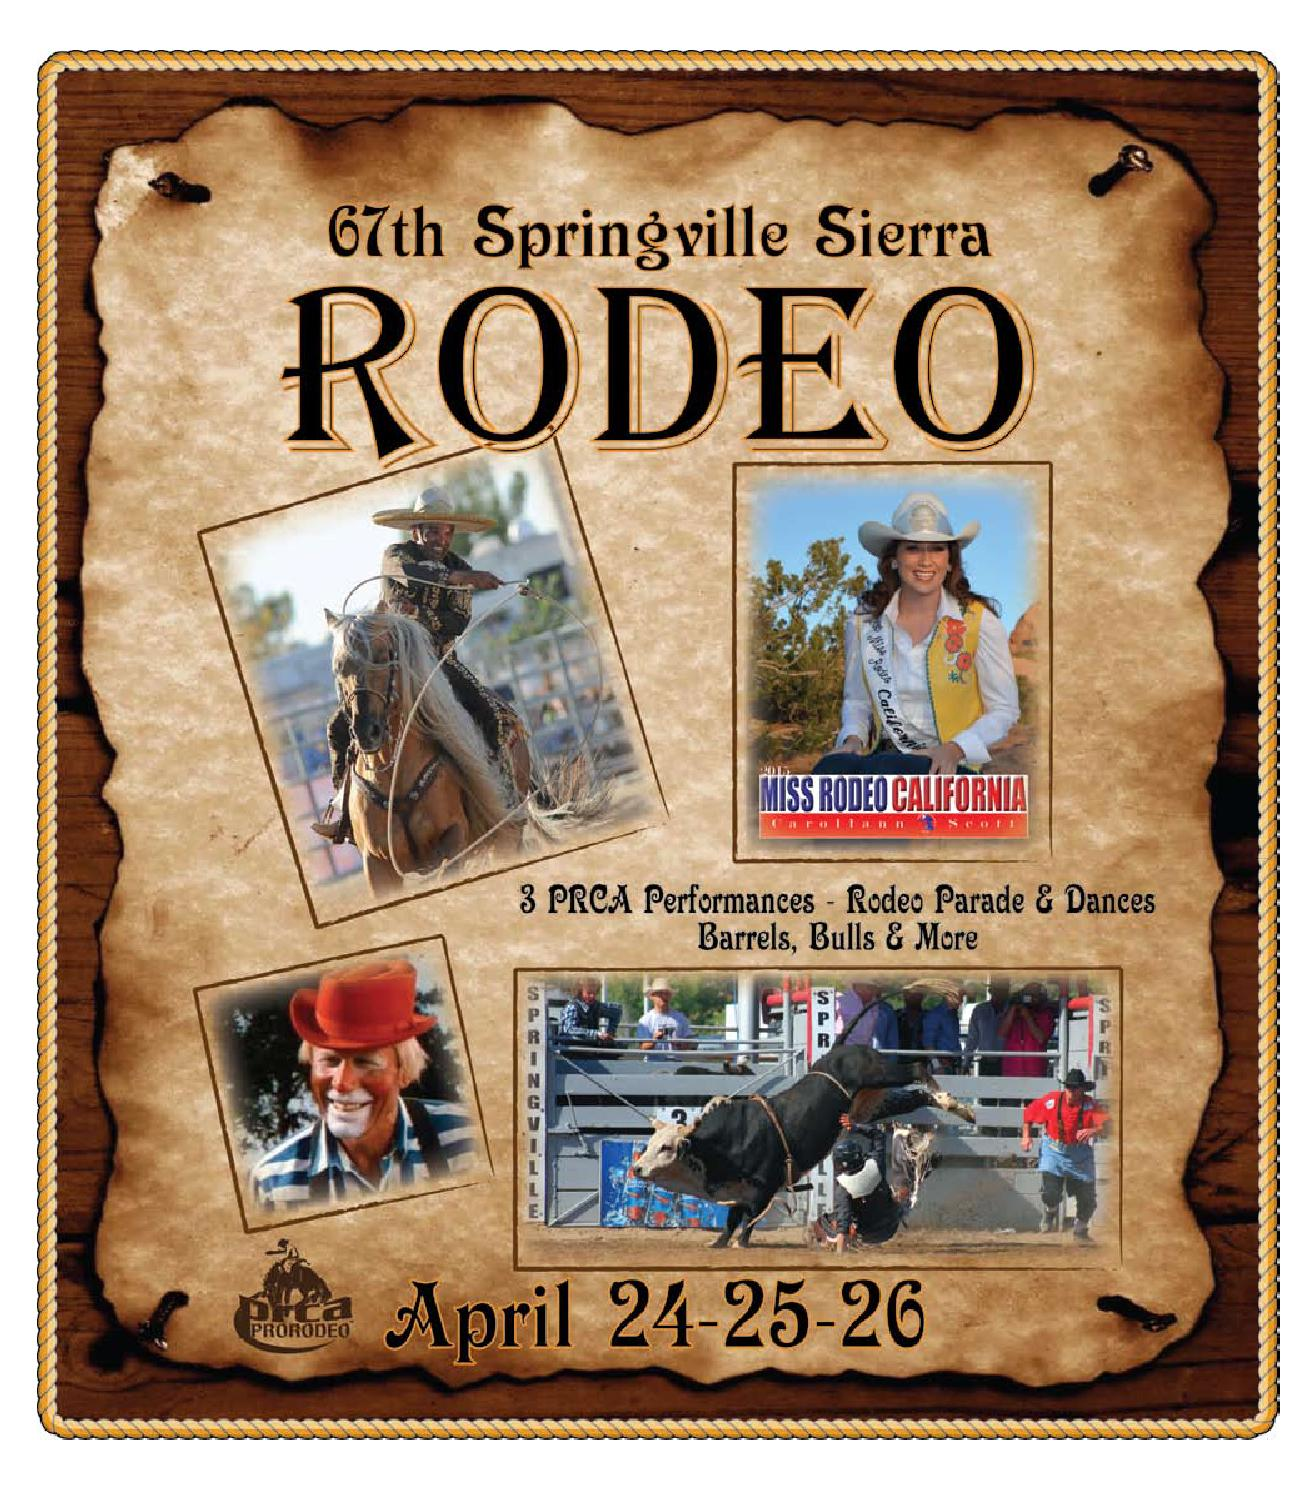 67th Springville Sierra Rodeo - Magazine cover